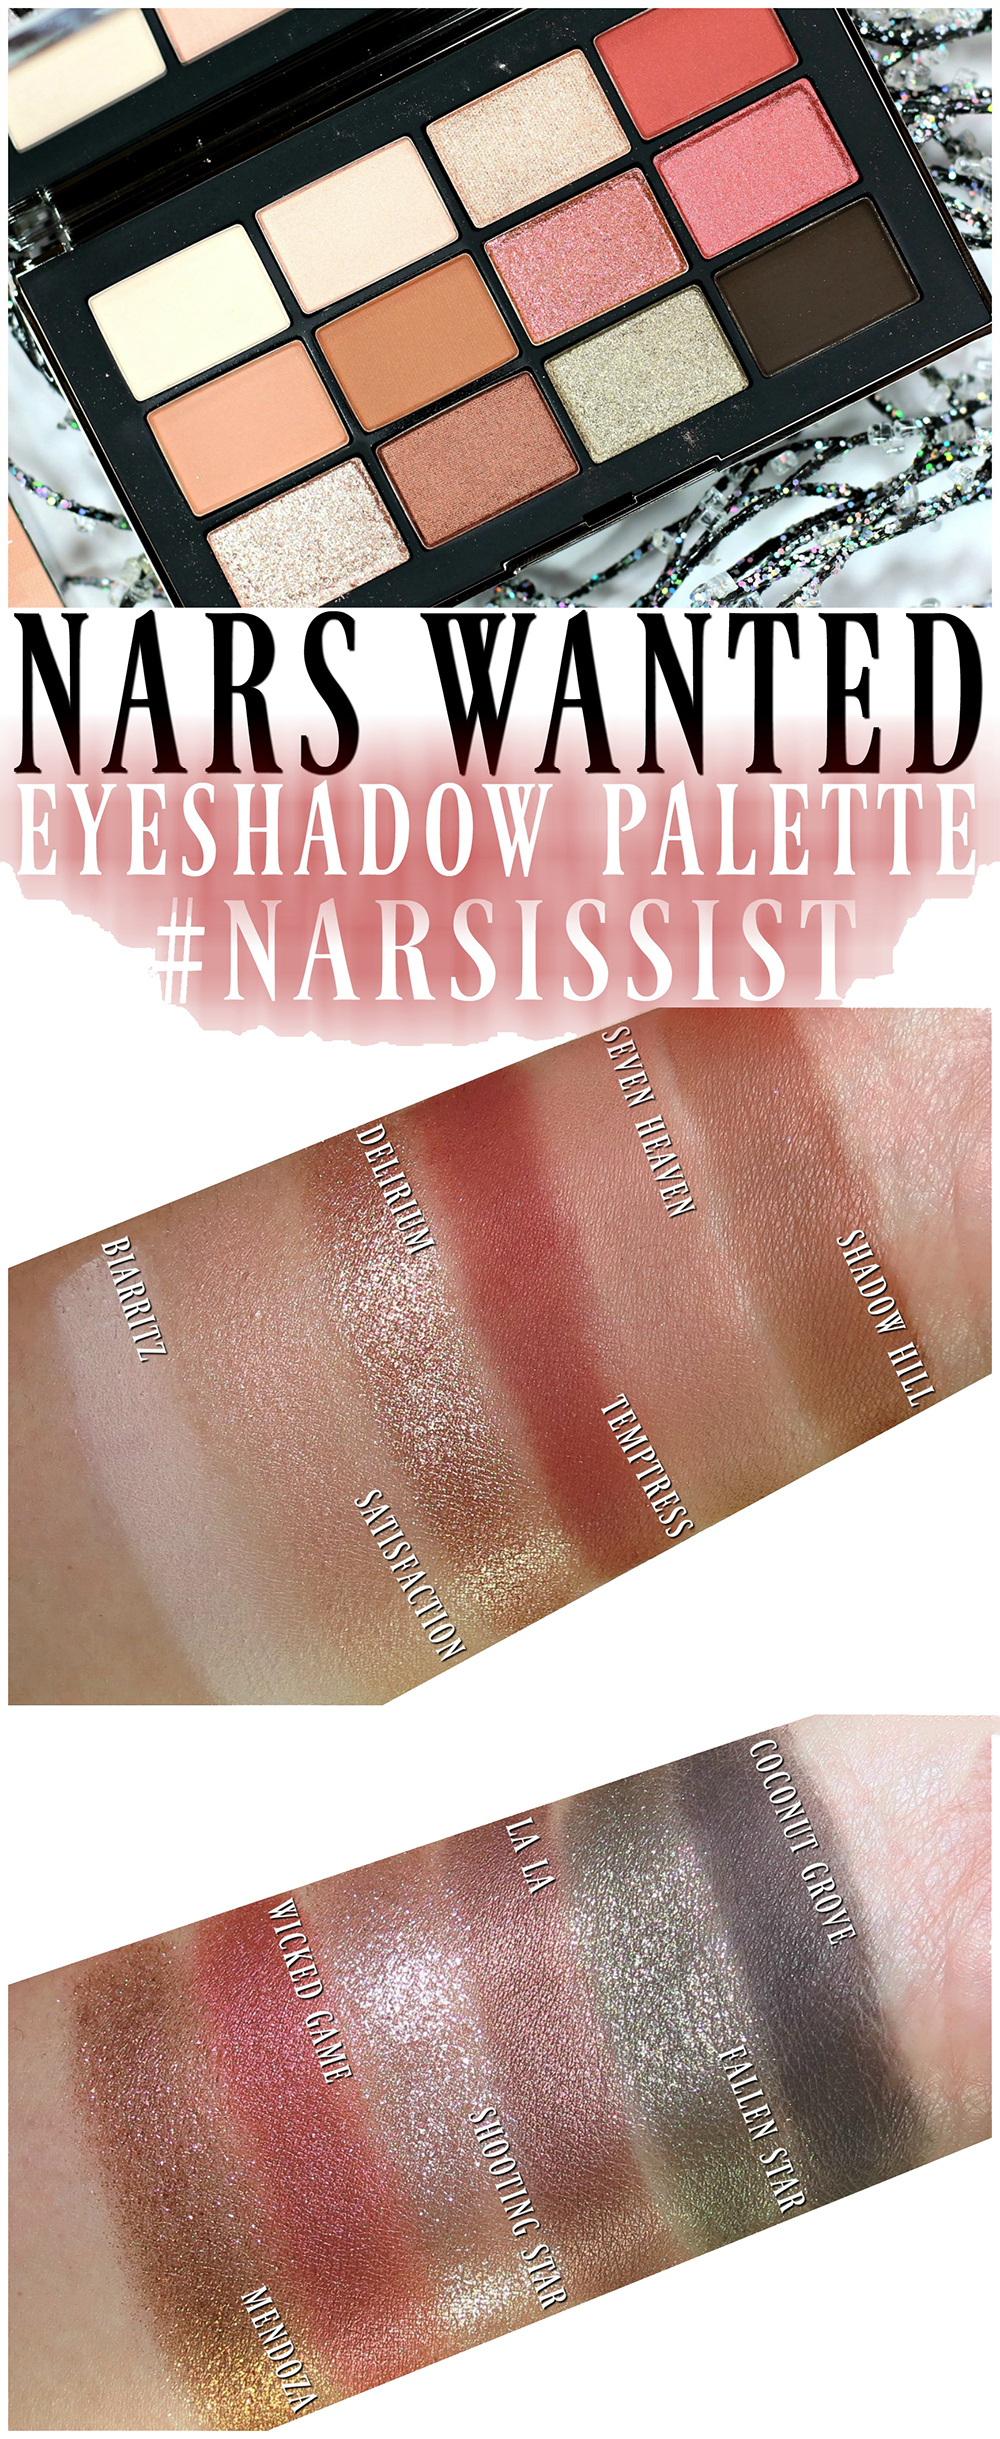 Nars Narsissist Wanted Eyeshadow Palette Swatches Review Eotd Eyeshadow Affordable Eyeshadow Palettes Nars Eyeshadow